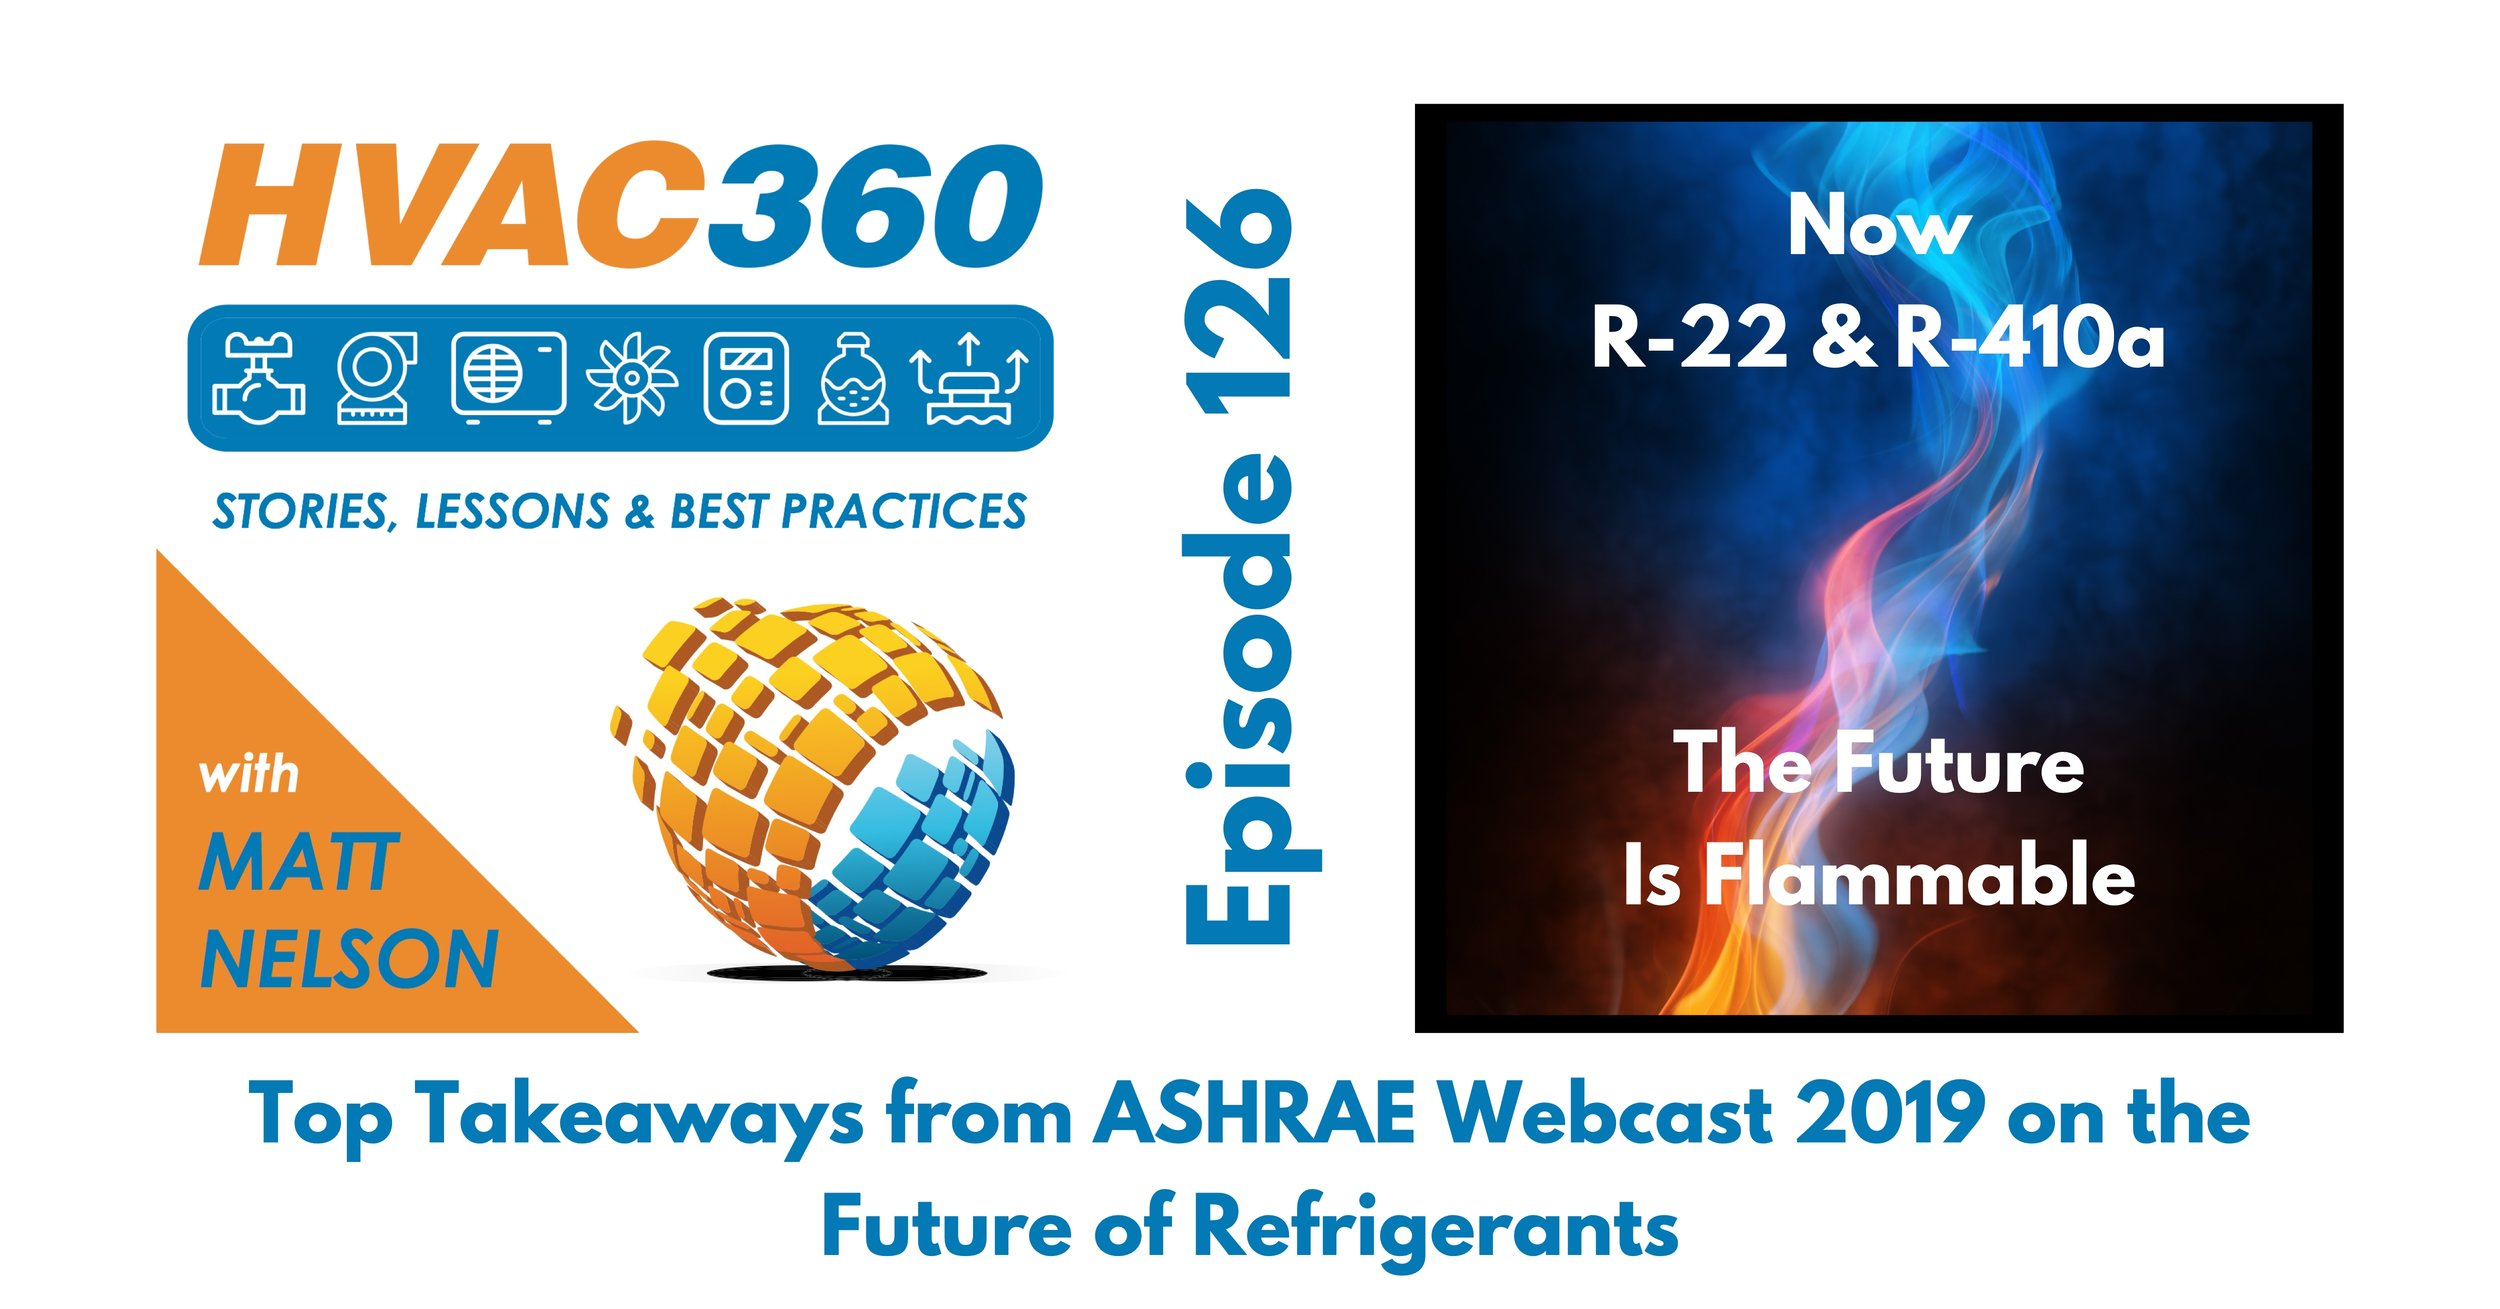 126 - Top Takeaways from ASHRAE Webcast 2019 on the Future of Refrigerants.jpg